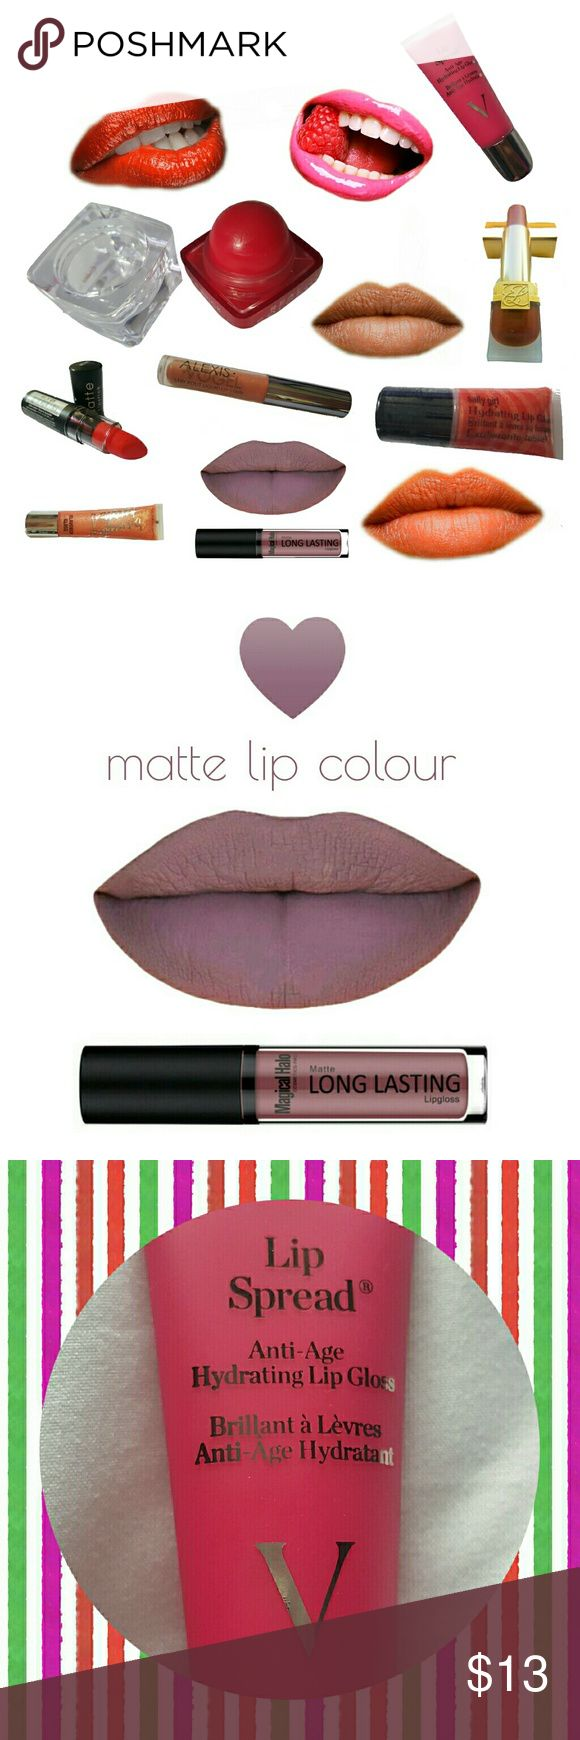 """8 lip products! Great deal! 1 matte NYX lipstick in """"indie"""